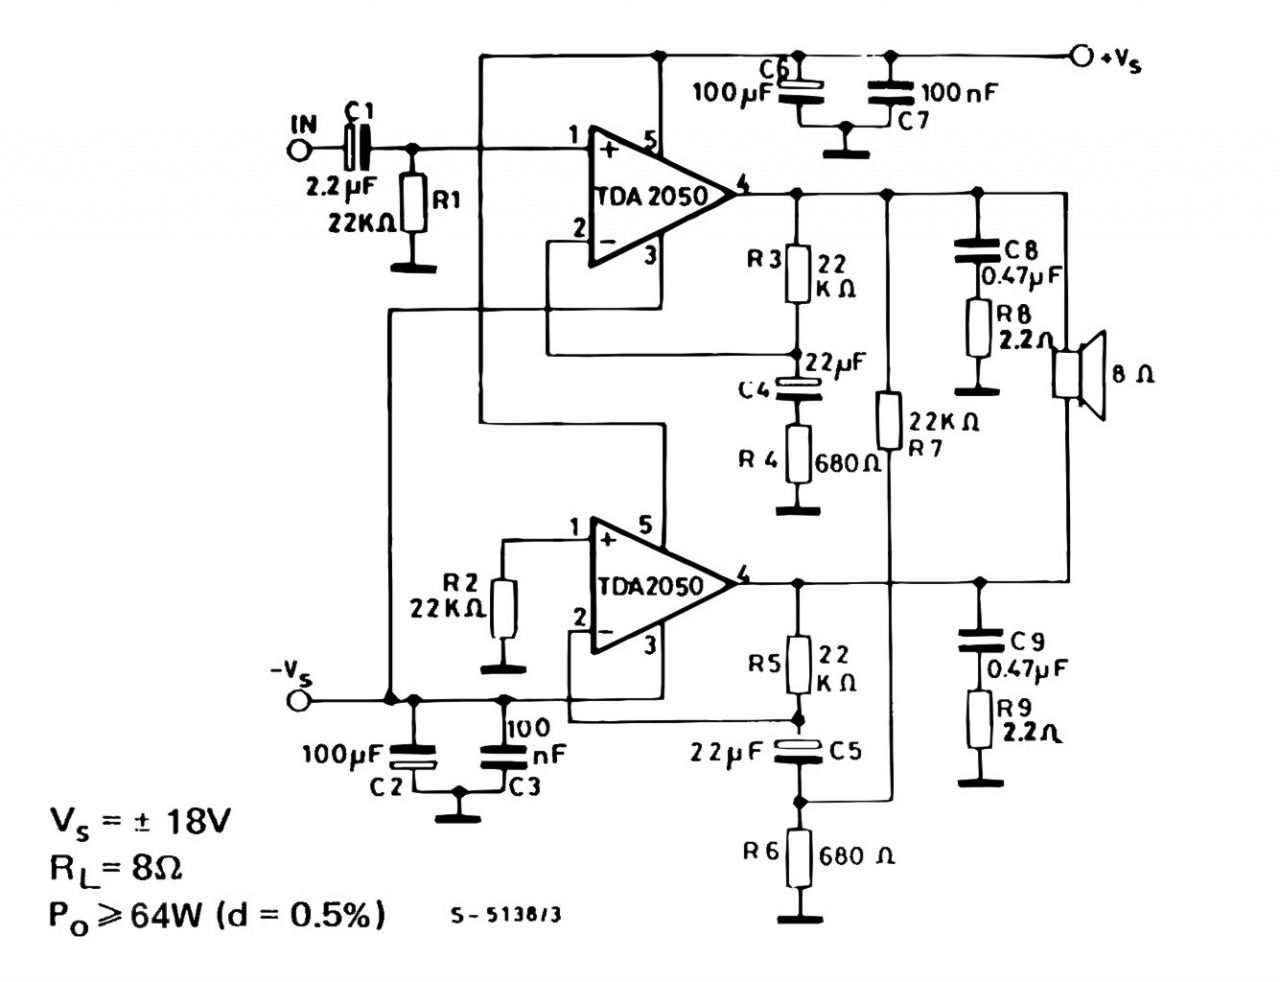 hight resolution of tda 2050 simple amp circuit bridge